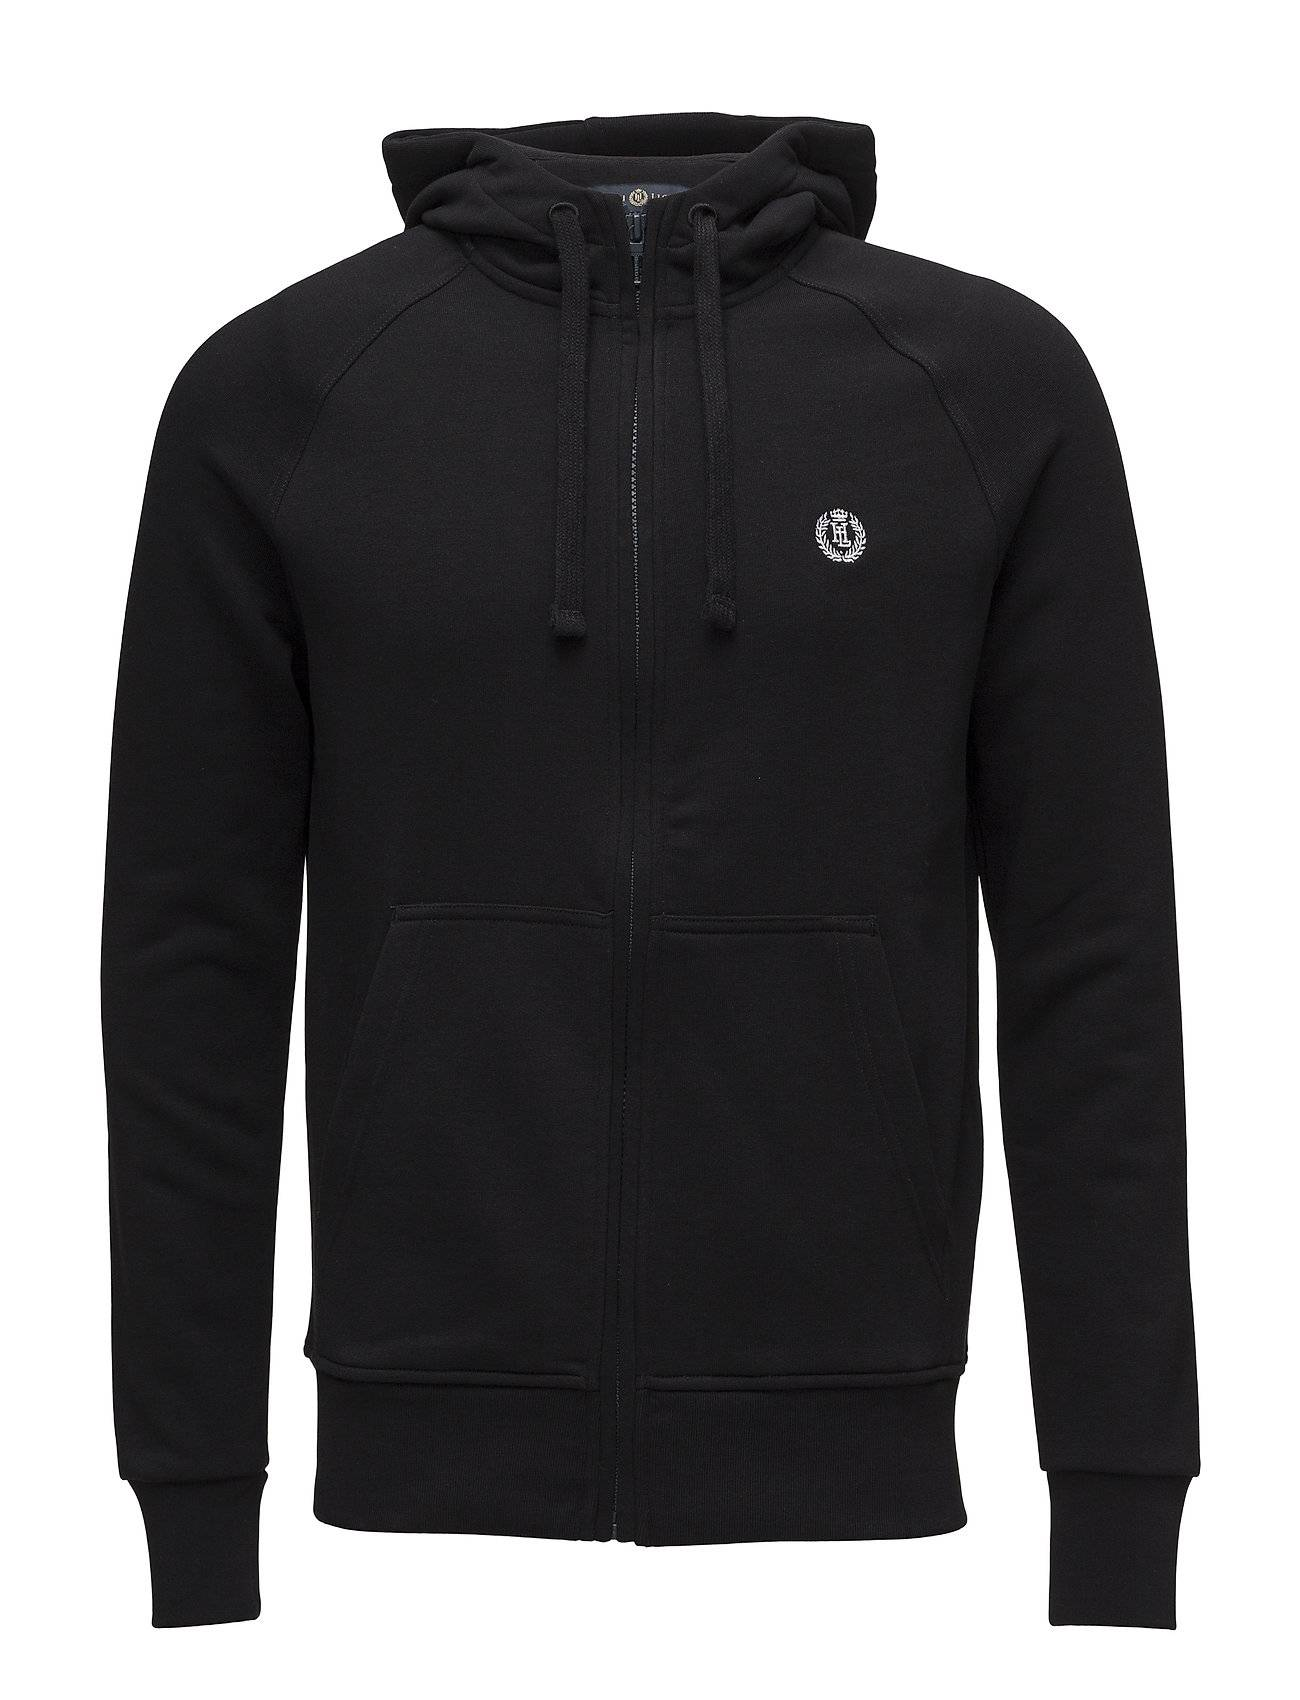 Henri Lloyd Barford Full Zip Sweat